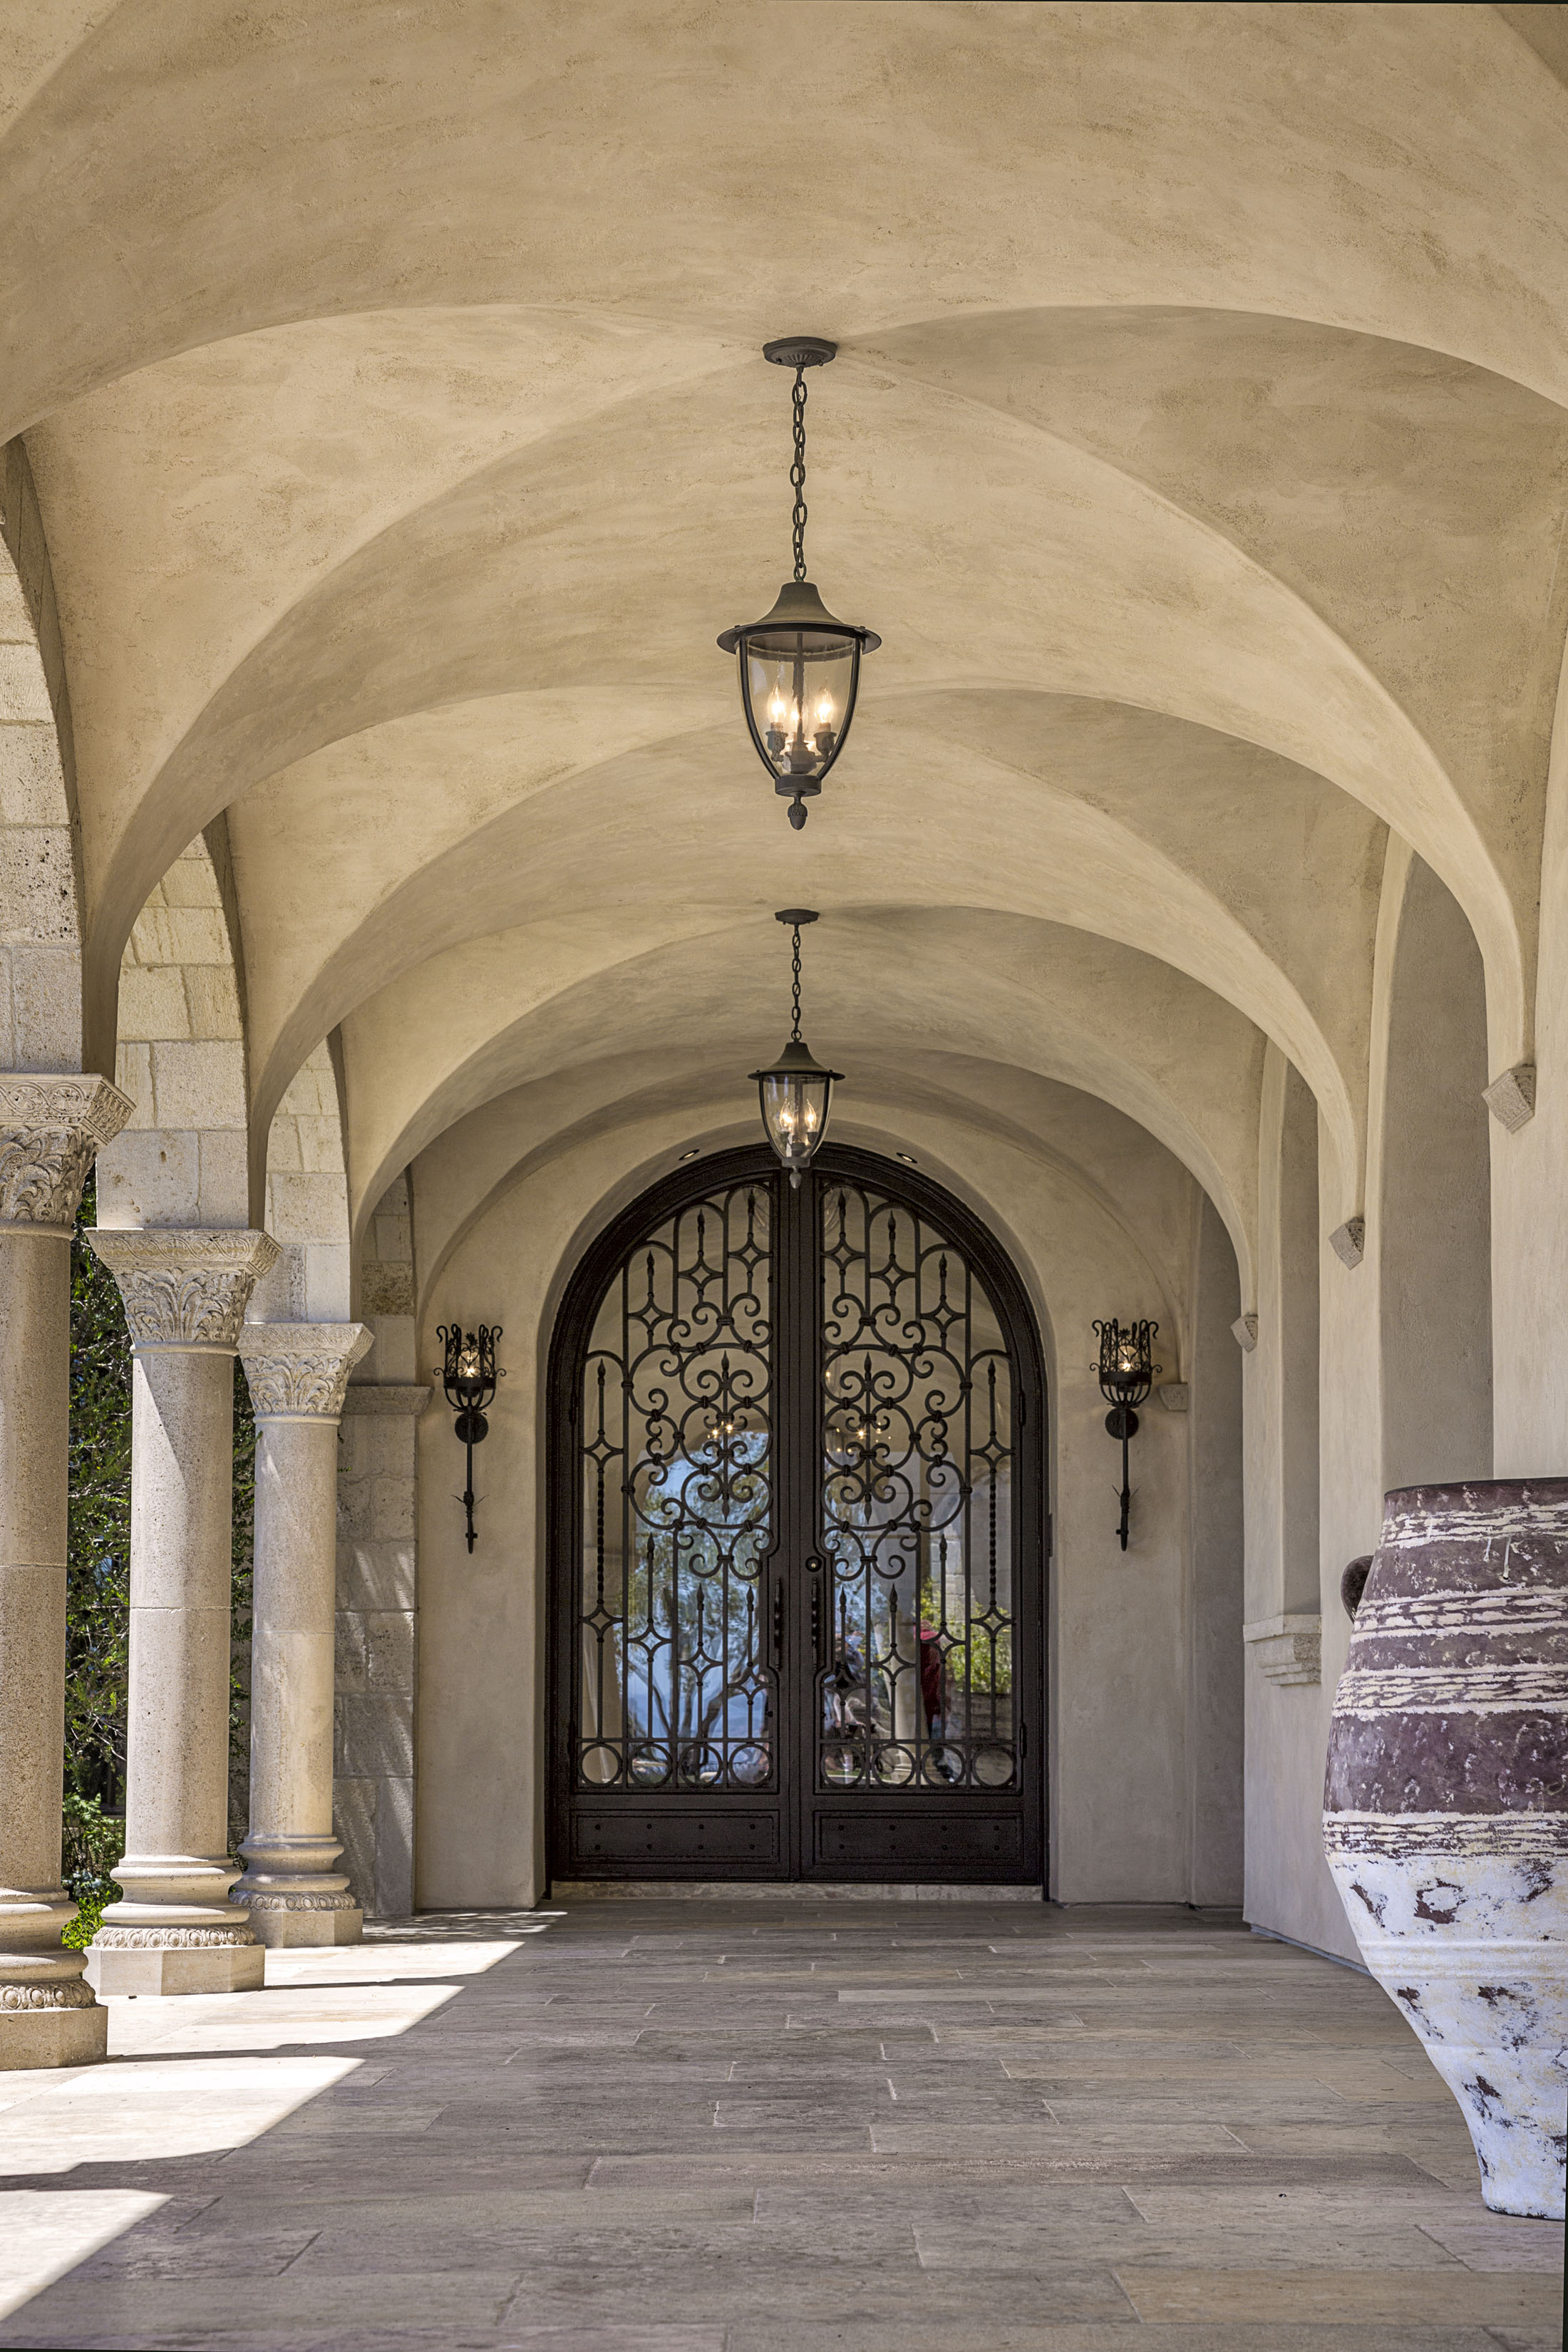 STrand Beach - ROMANesque entrywAY by Oatman Architects